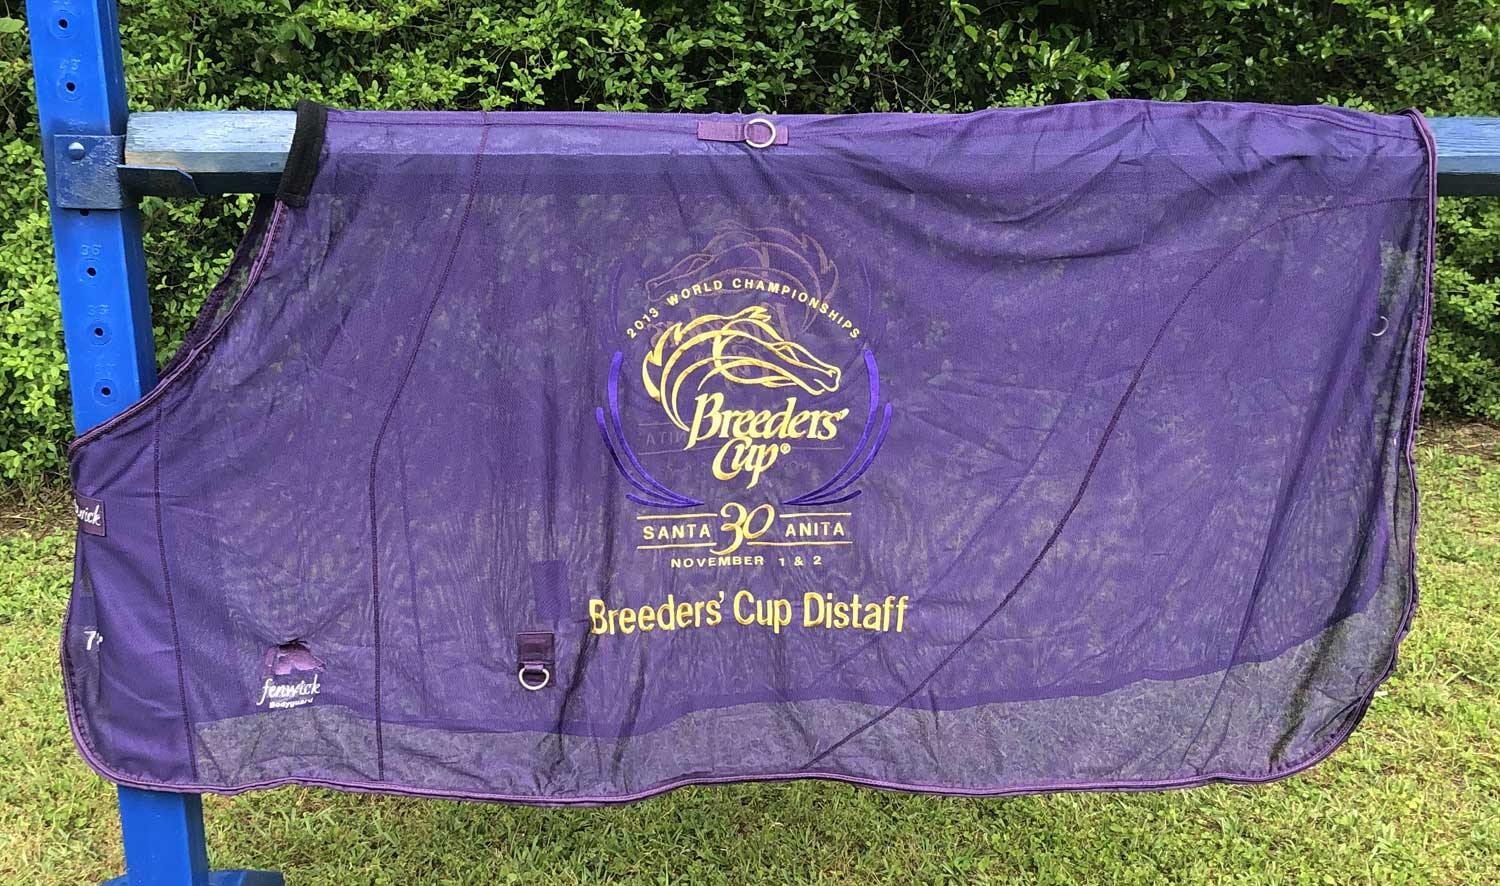 Purple flysheet with gold Breeders' Cup World Championships embroidery for 2013 races at Santa Anita